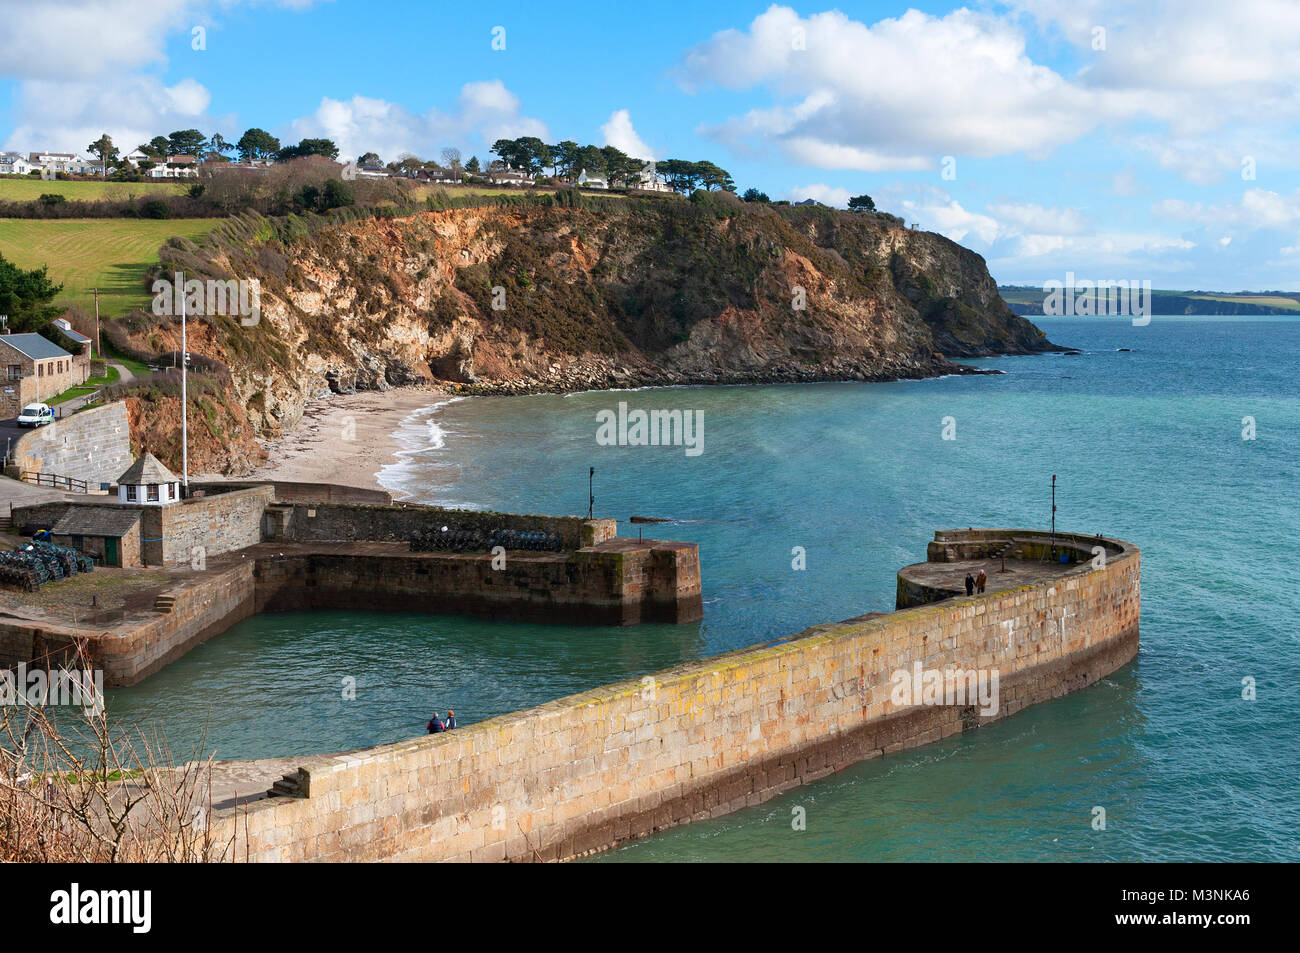 historic harbour at charlestown in cornwall, england, britain, uk. - Stock Image